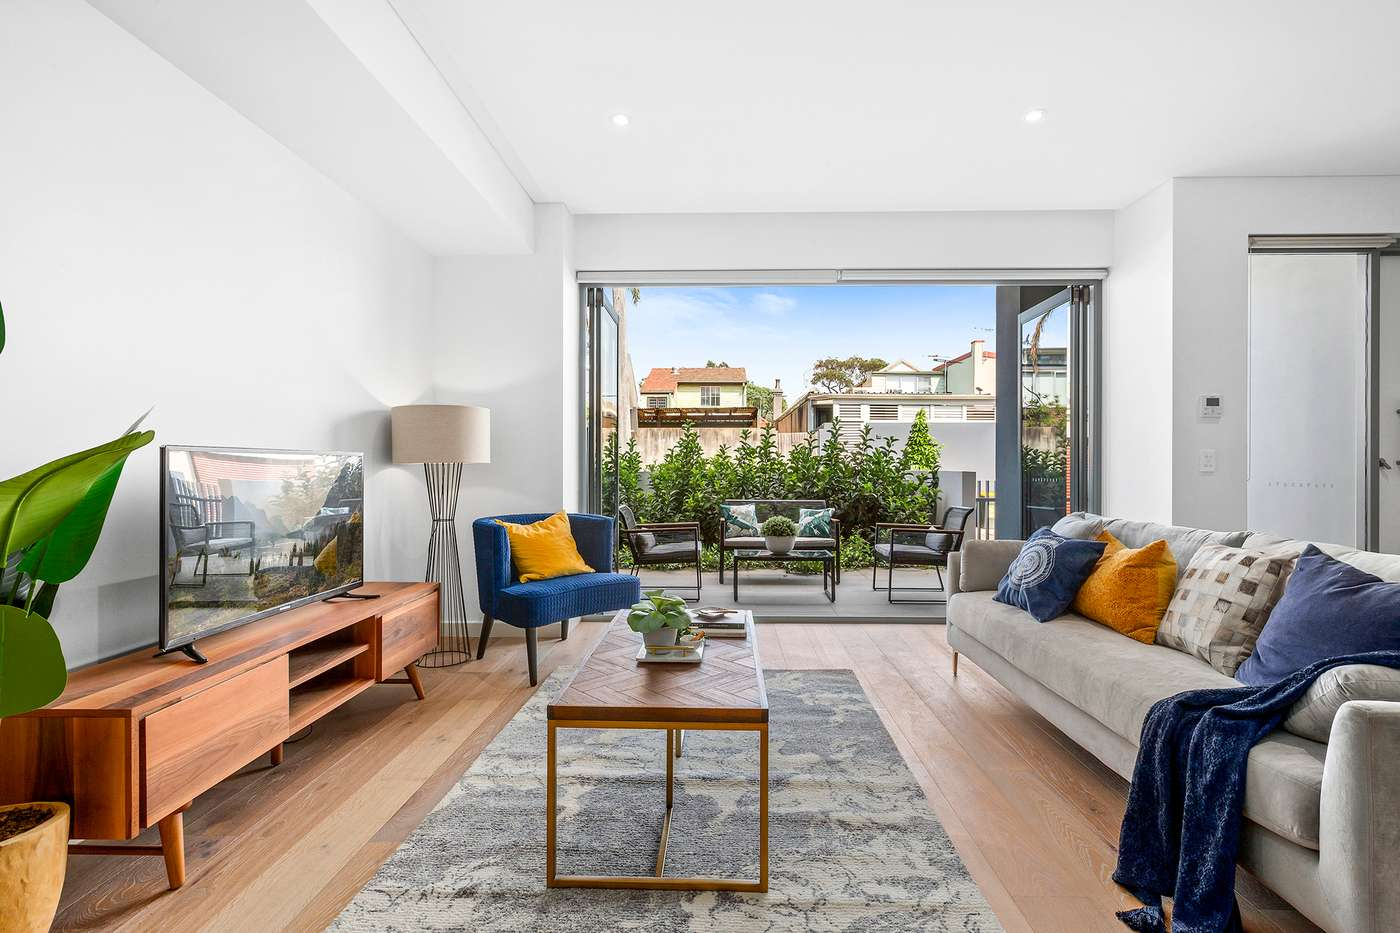 Main view of Homely terrace listing, 16-56 Salisbury Lane, Rosebery, NSW 2018